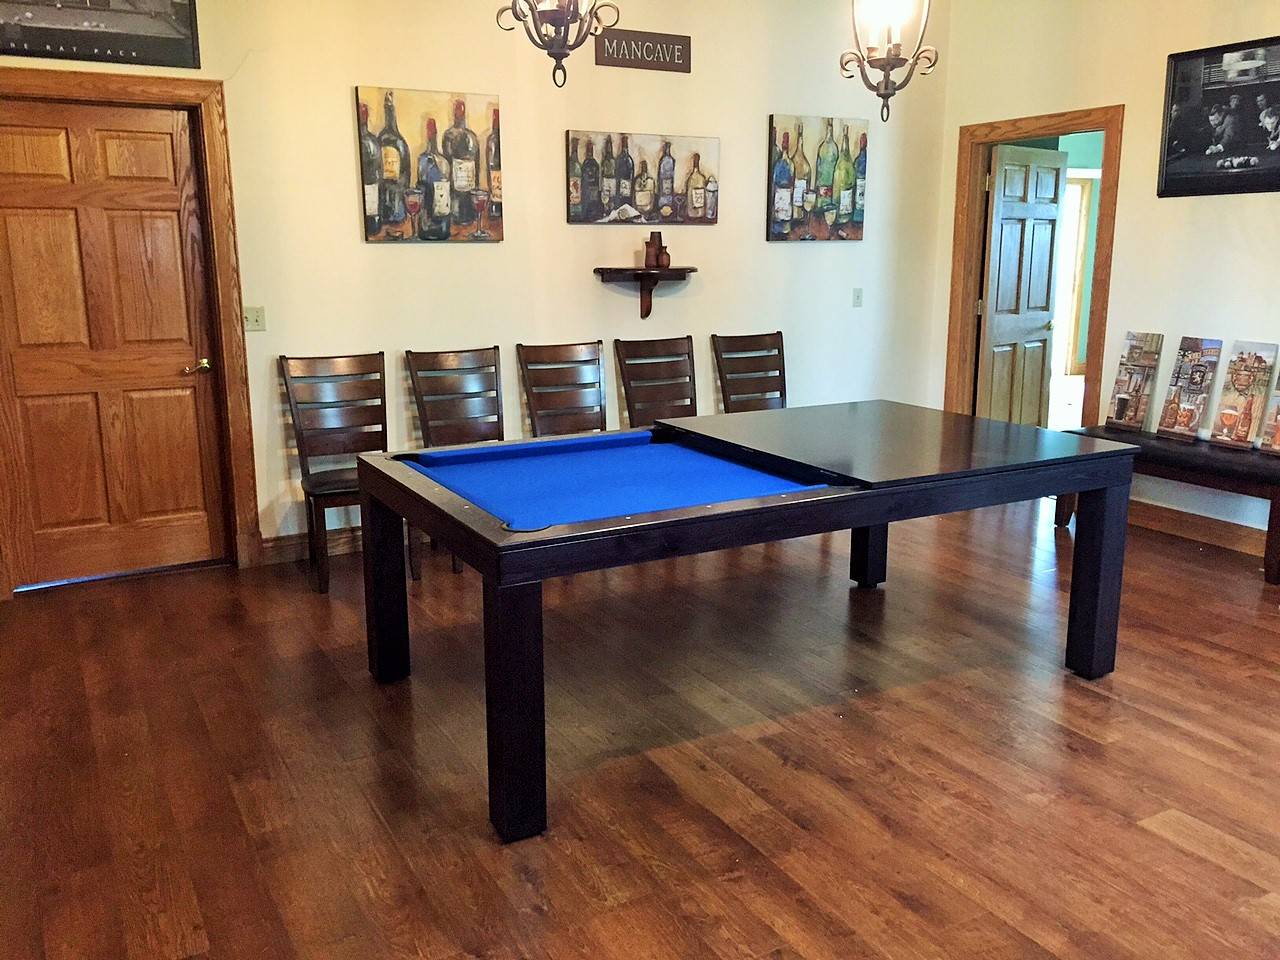 Man Cave Pool Tables